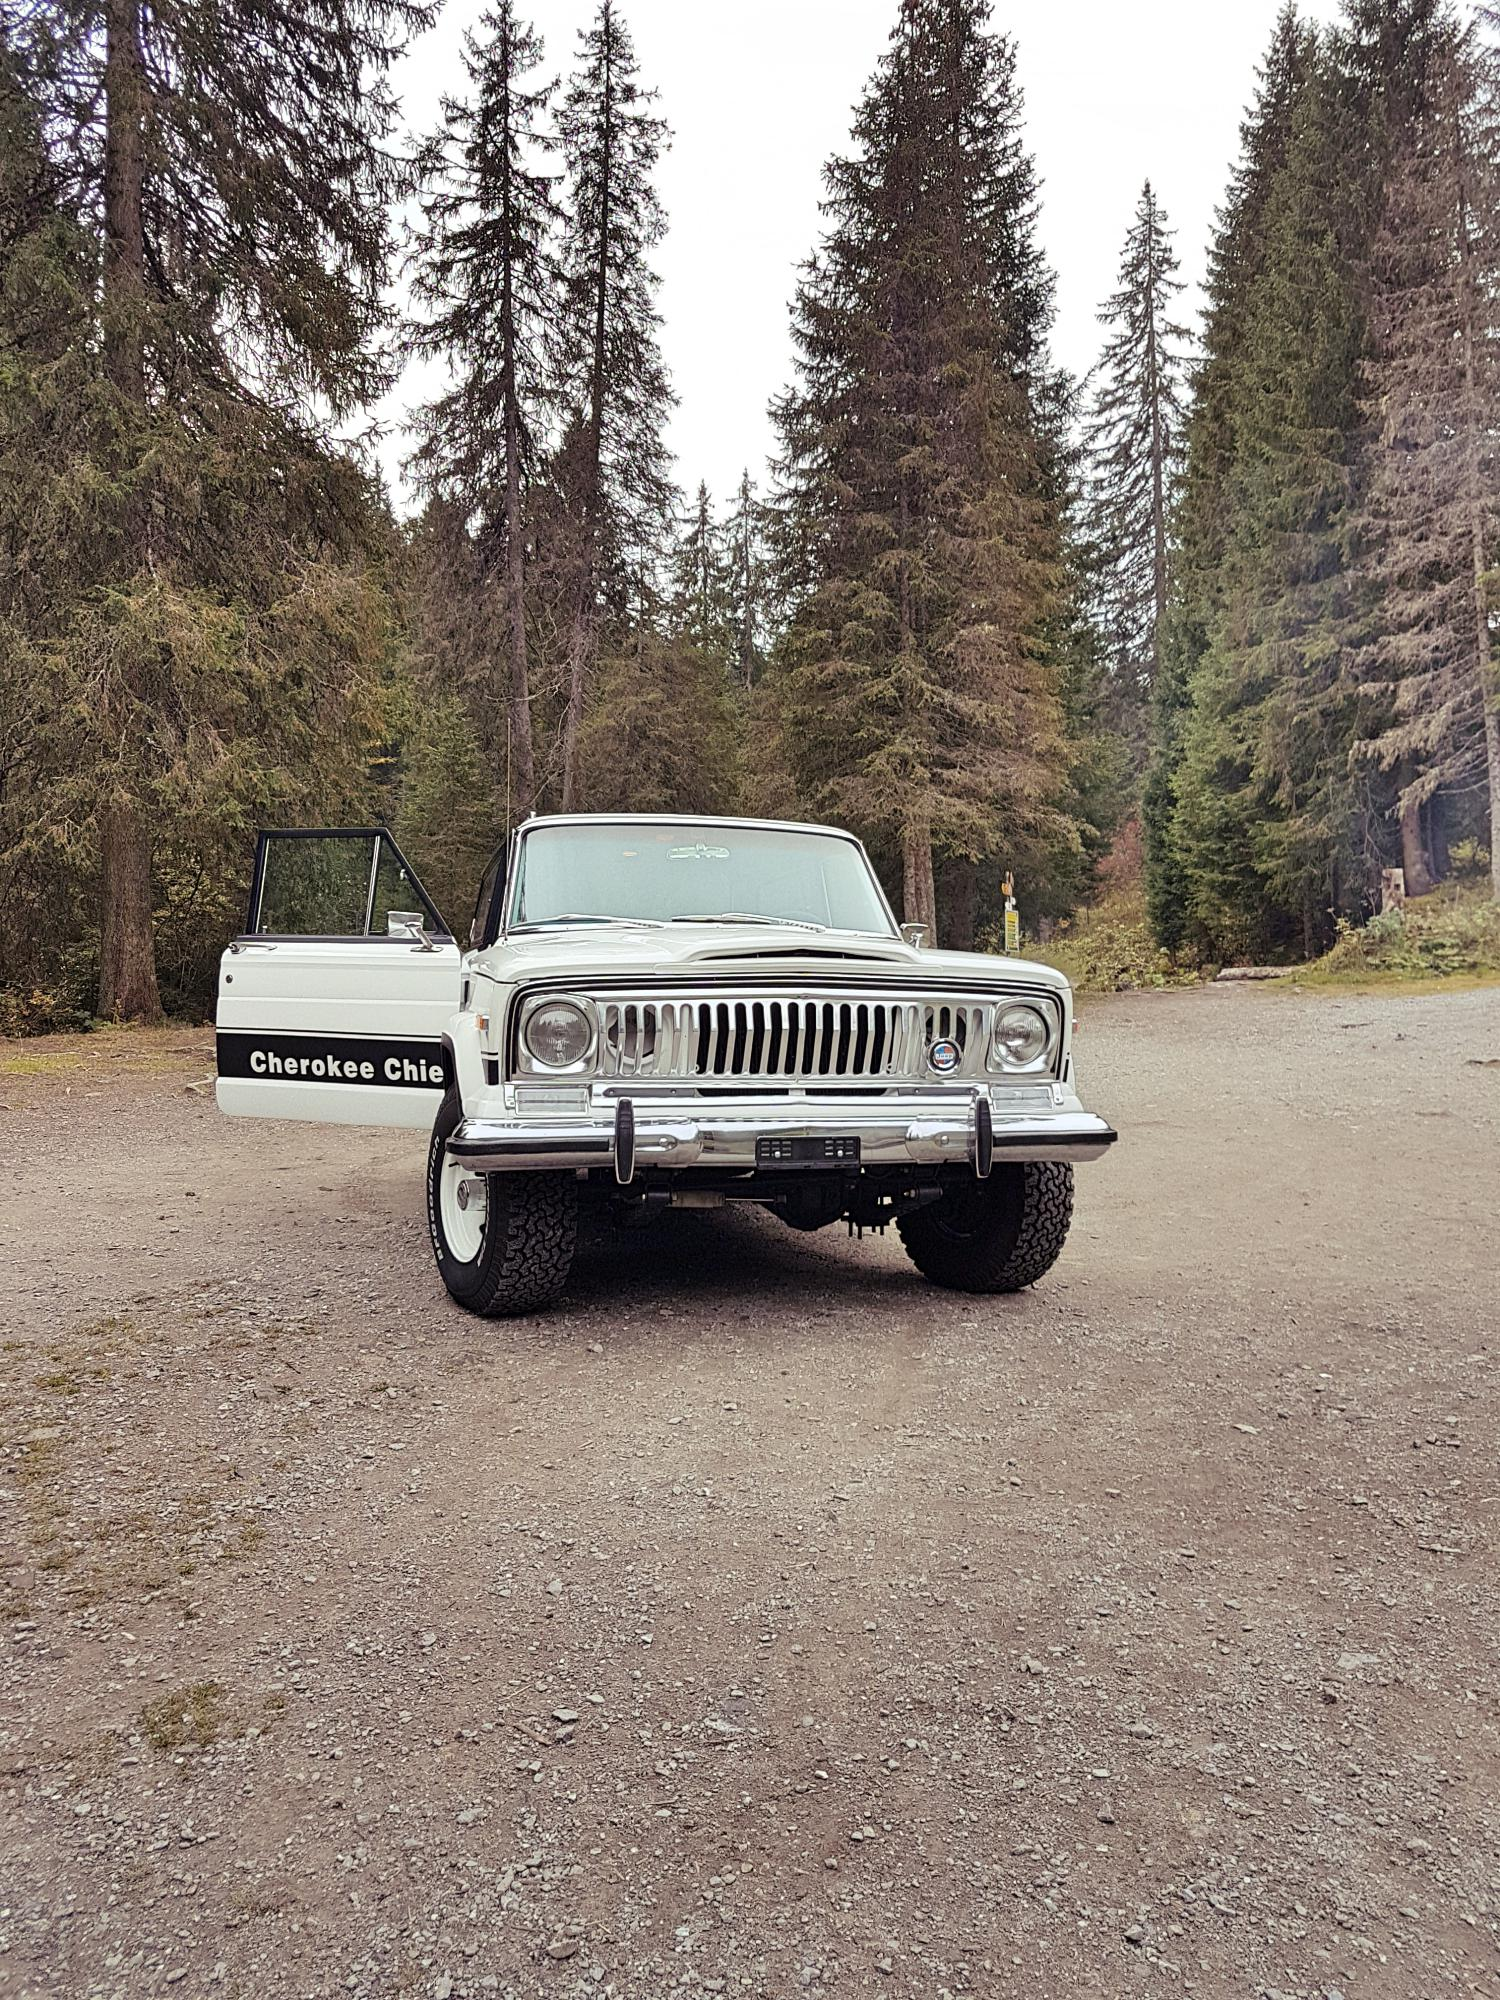 jeep-cherokee-chief-1978-shooting-morgins-switzerland-12.jpg